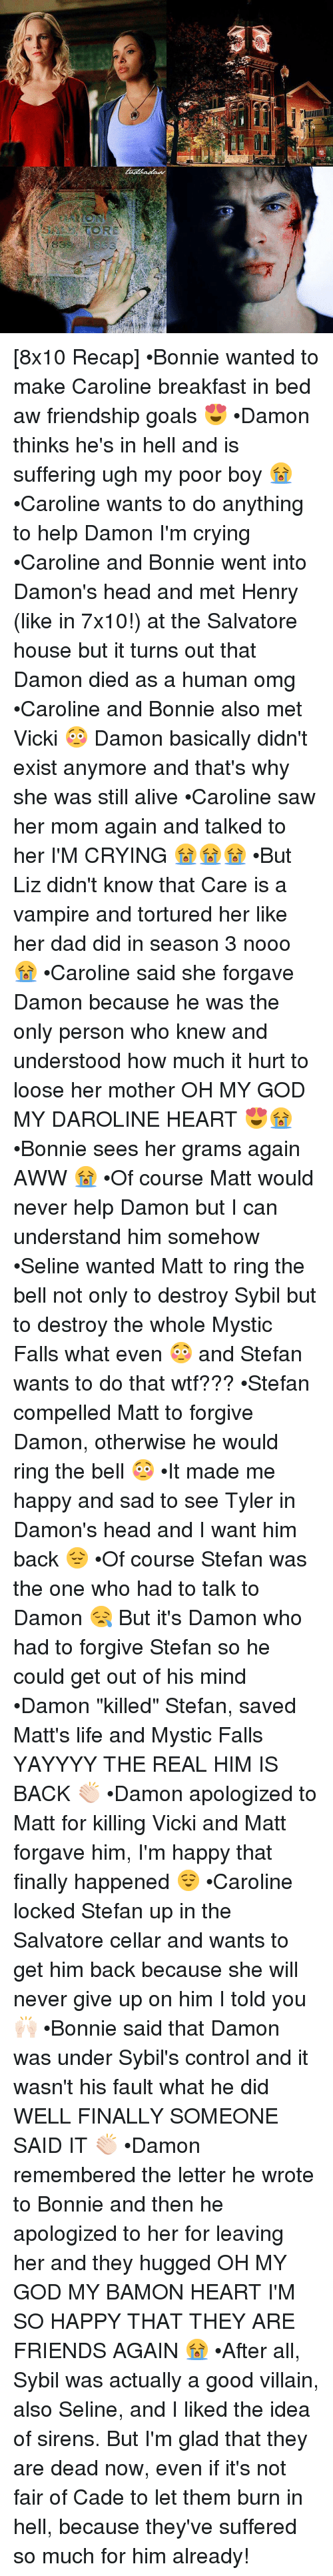 "Breakfast In Bed: ORE [8x10 Recap] •Bonnie wanted to make Caroline breakfast in bed aw friendship goals 😍 •Damon thinks he's in hell and is suffering ugh my poor boy 😭 •Caroline wants to do anything to help Damon I'm crying •Caroline and Bonnie went into Damon's head and met Henry (like in 7x10!) at the Salvatore house but it turns out that Damon died as a human omg •Caroline and Bonnie also met Vicki 😳 Damon basically didn't exist anymore and that's why she was still alive •Caroline saw her mom again and talked to her I'M CRYING 😭😭😭 •But Liz didn't know that Care is a vampire and tortured her like her dad did in season 3 nooo 😭 •Caroline said she forgave Damon because he was the only person who knew and understood how much it hurt to loose her mother OH MY GOD MY DAROLINE HEART 😍😭 •Bonnie sees her grams again AWW 😭 •Of course Matt would never help Damon but I can understand him somehow •Seline wanted Matt to ring the bell not only to destroy Sybil but to destroy the whole Mystic Falls what even 😳 and Stefan wants to do that wtf??? •Stefan compelled Matt to forgive Damon, otherwise he would ring the bell 😳 •It made me happy and sad to see Tyler in Damon's head and I want him back 😔 •Of course Stefan was the one who had to talk to Damon 😪 But it's Damon who had to forgive Stefan so he could get out of his mind •Damon ""killed"" Stefan, saved Matt's life and Mystic Falls YAYYYY THE REAL HIM IS BACK 👏🏻 •Damon apologized to Matt for killing Vicki and Matt forgave him, I'm happy that finally happened 😌 •Caroline locked Stefan up in the Salvatore cellar and wants to get him back because she will never give up on him I told you 🙌🏻 •Bonnie said that Damon was under Sybil's control and it wasn't his fault what he did WELL FINALLY SOMEONE SAID IT 👏🏻 •Damon remembered the letter he wrote to Bonnie and then he apologized to her for leaving her and they hugged OH MY GOD MY BAMON HEART I'M SO HAPPY THAT THEY ARE FRIENDS AGAIN 😭 •After all, Sybil was actually a good villain, also Seline, and I liked the idea of sirens. But I'm glad that they are dead now, even if it's not fair of Cade to let them burn in hell, because they've suffered so much for him already!"